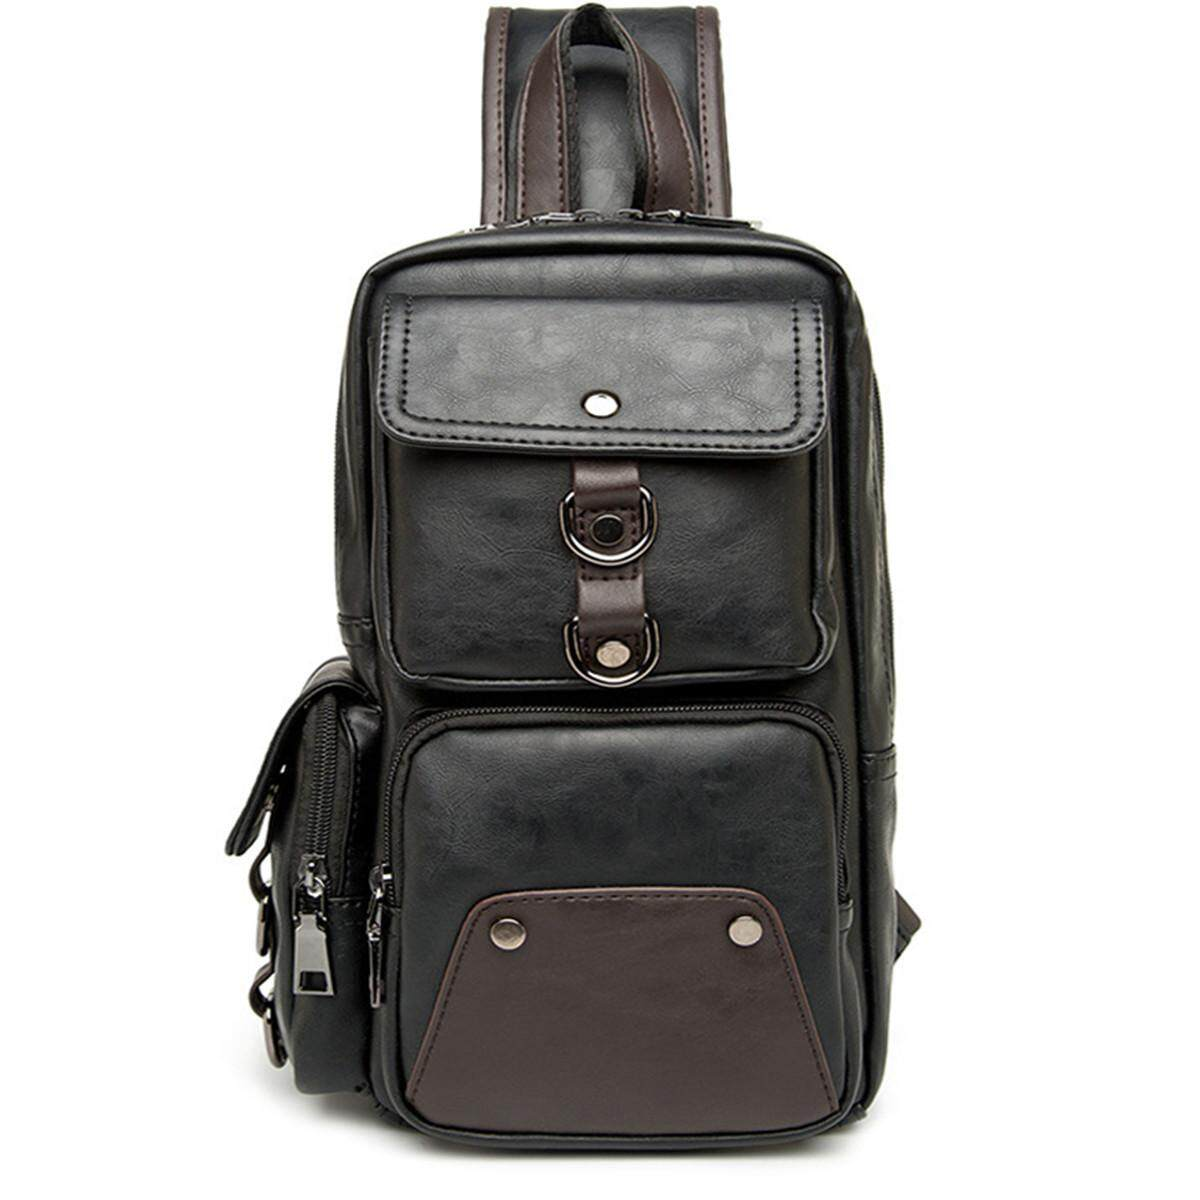 4afaa9158d10 Fashion Men Leather Shoulder Chest Bag Waist Messenger Sling Crossbody Day  Pack